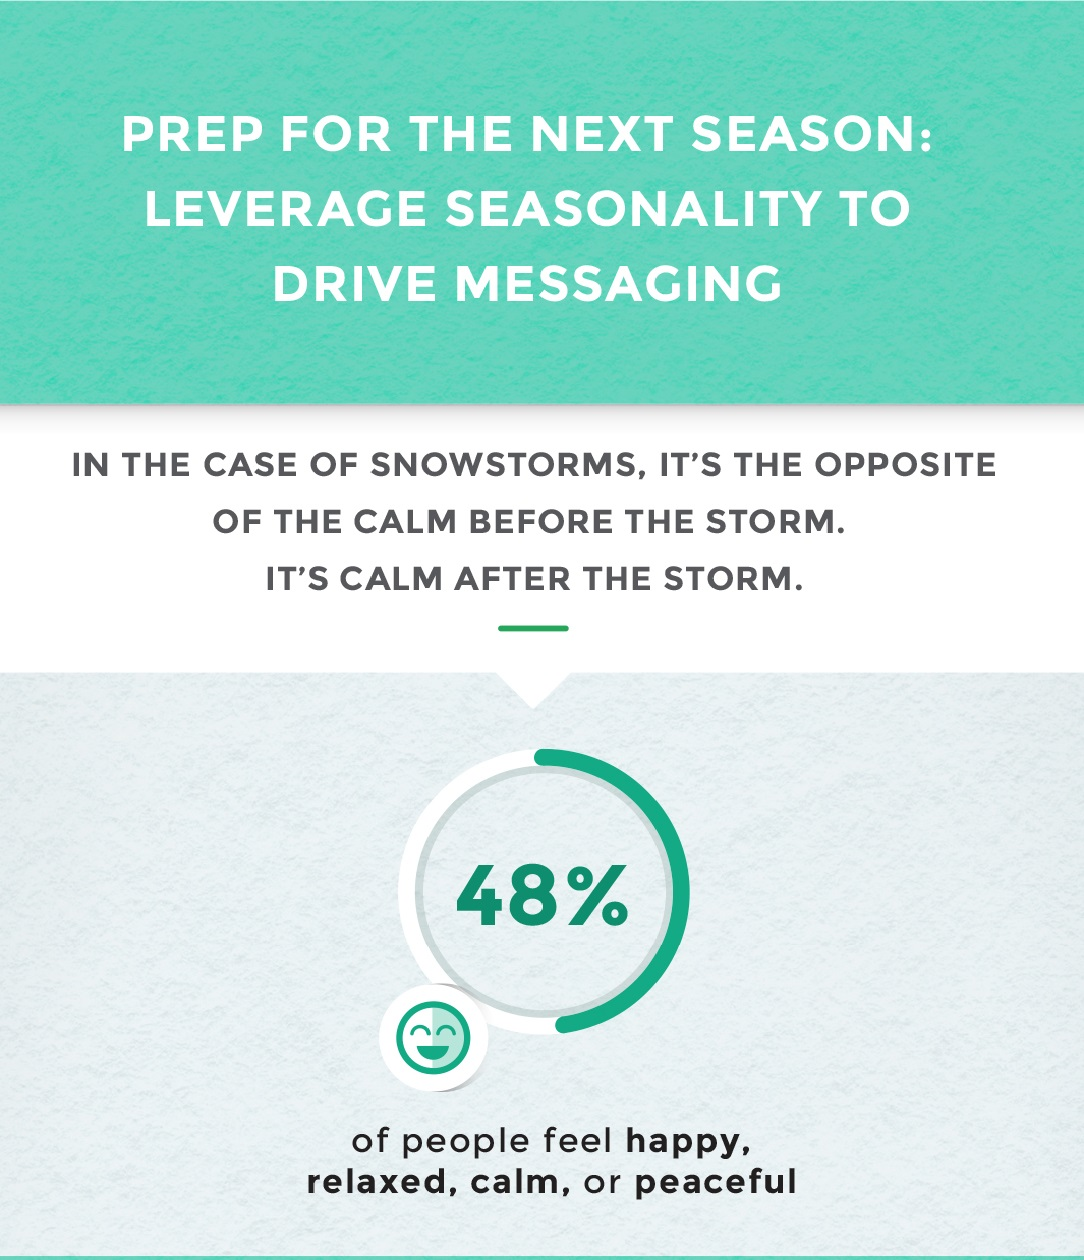 Snowstorms are the New Super Bowl (post-storm)